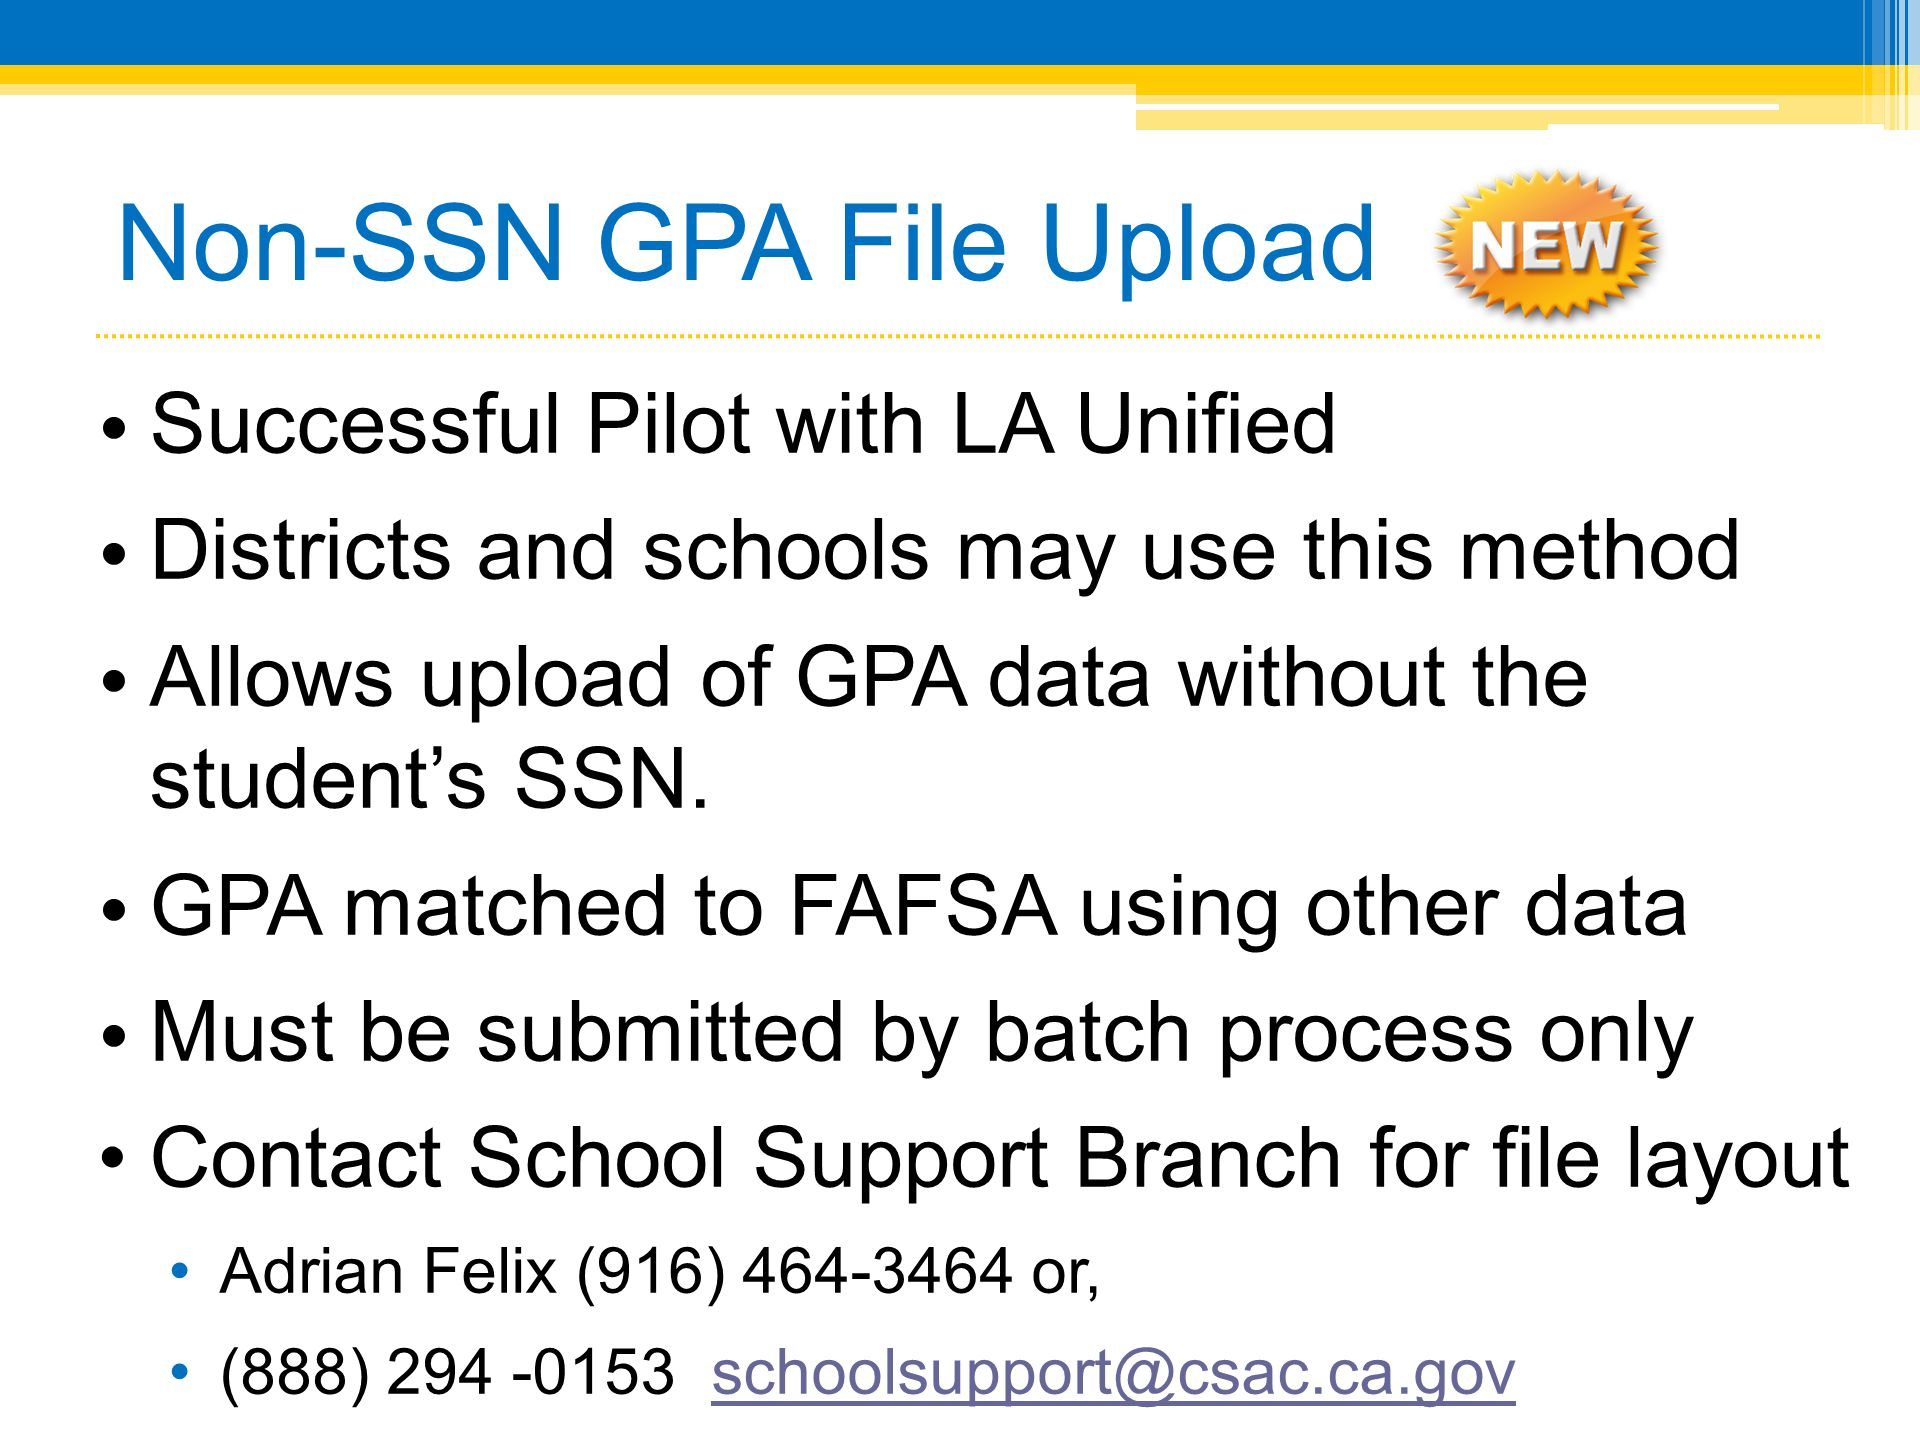 Non-SSN GPA File Upload • Successful Pilot with LA Unified • Districts and schools may use this method • Allows upload of GPA data without the student